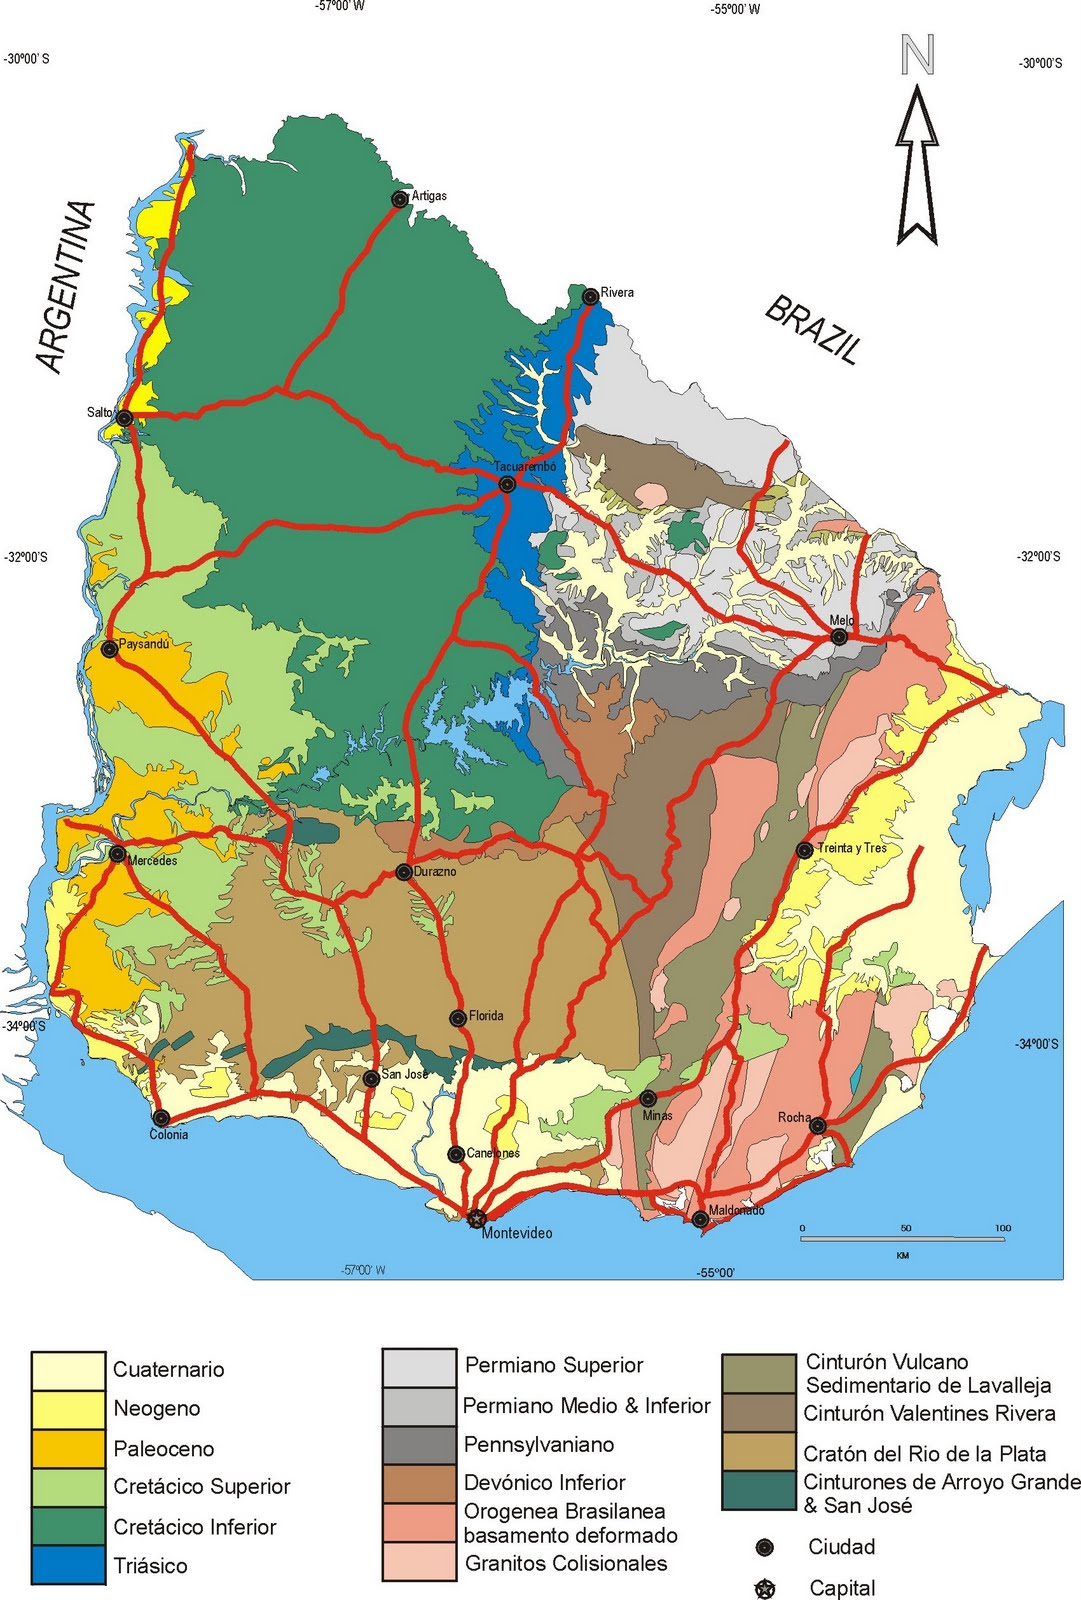 impressum - geological map of uruguay